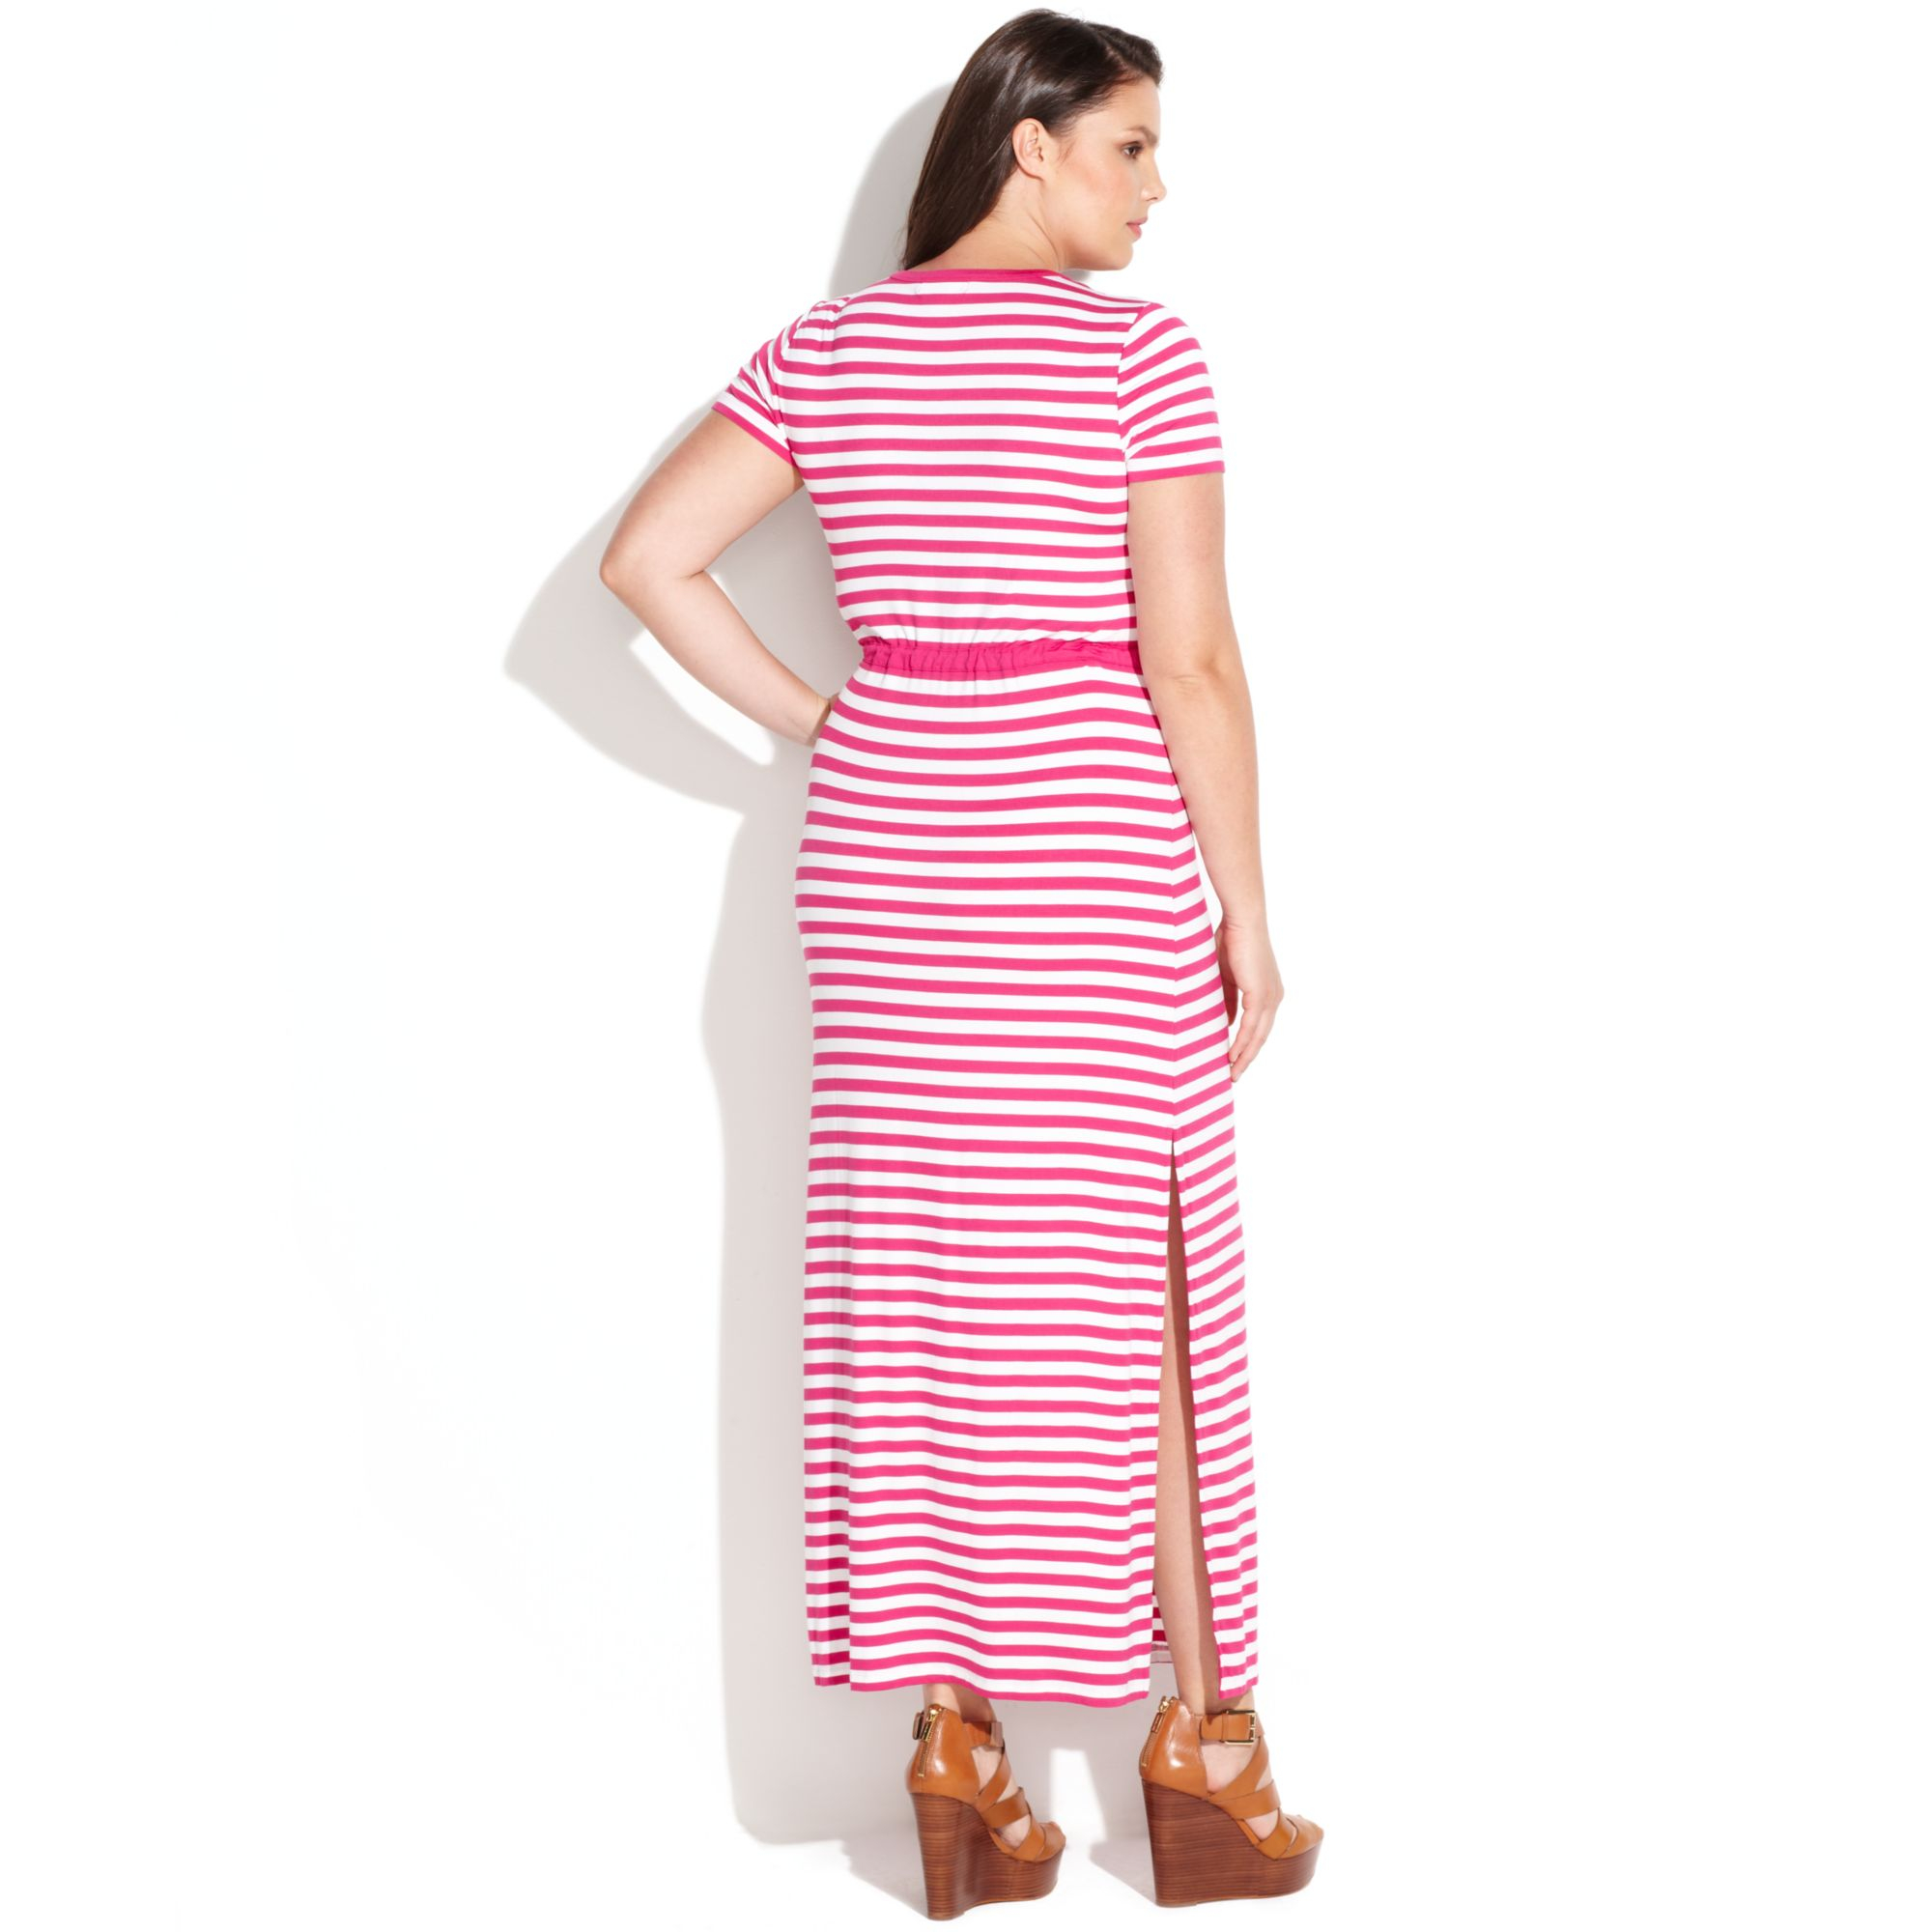 7f4d226dff5 Lyst - Michael Kors Plus Size Short Sleeve Striped Maxi Dress in White